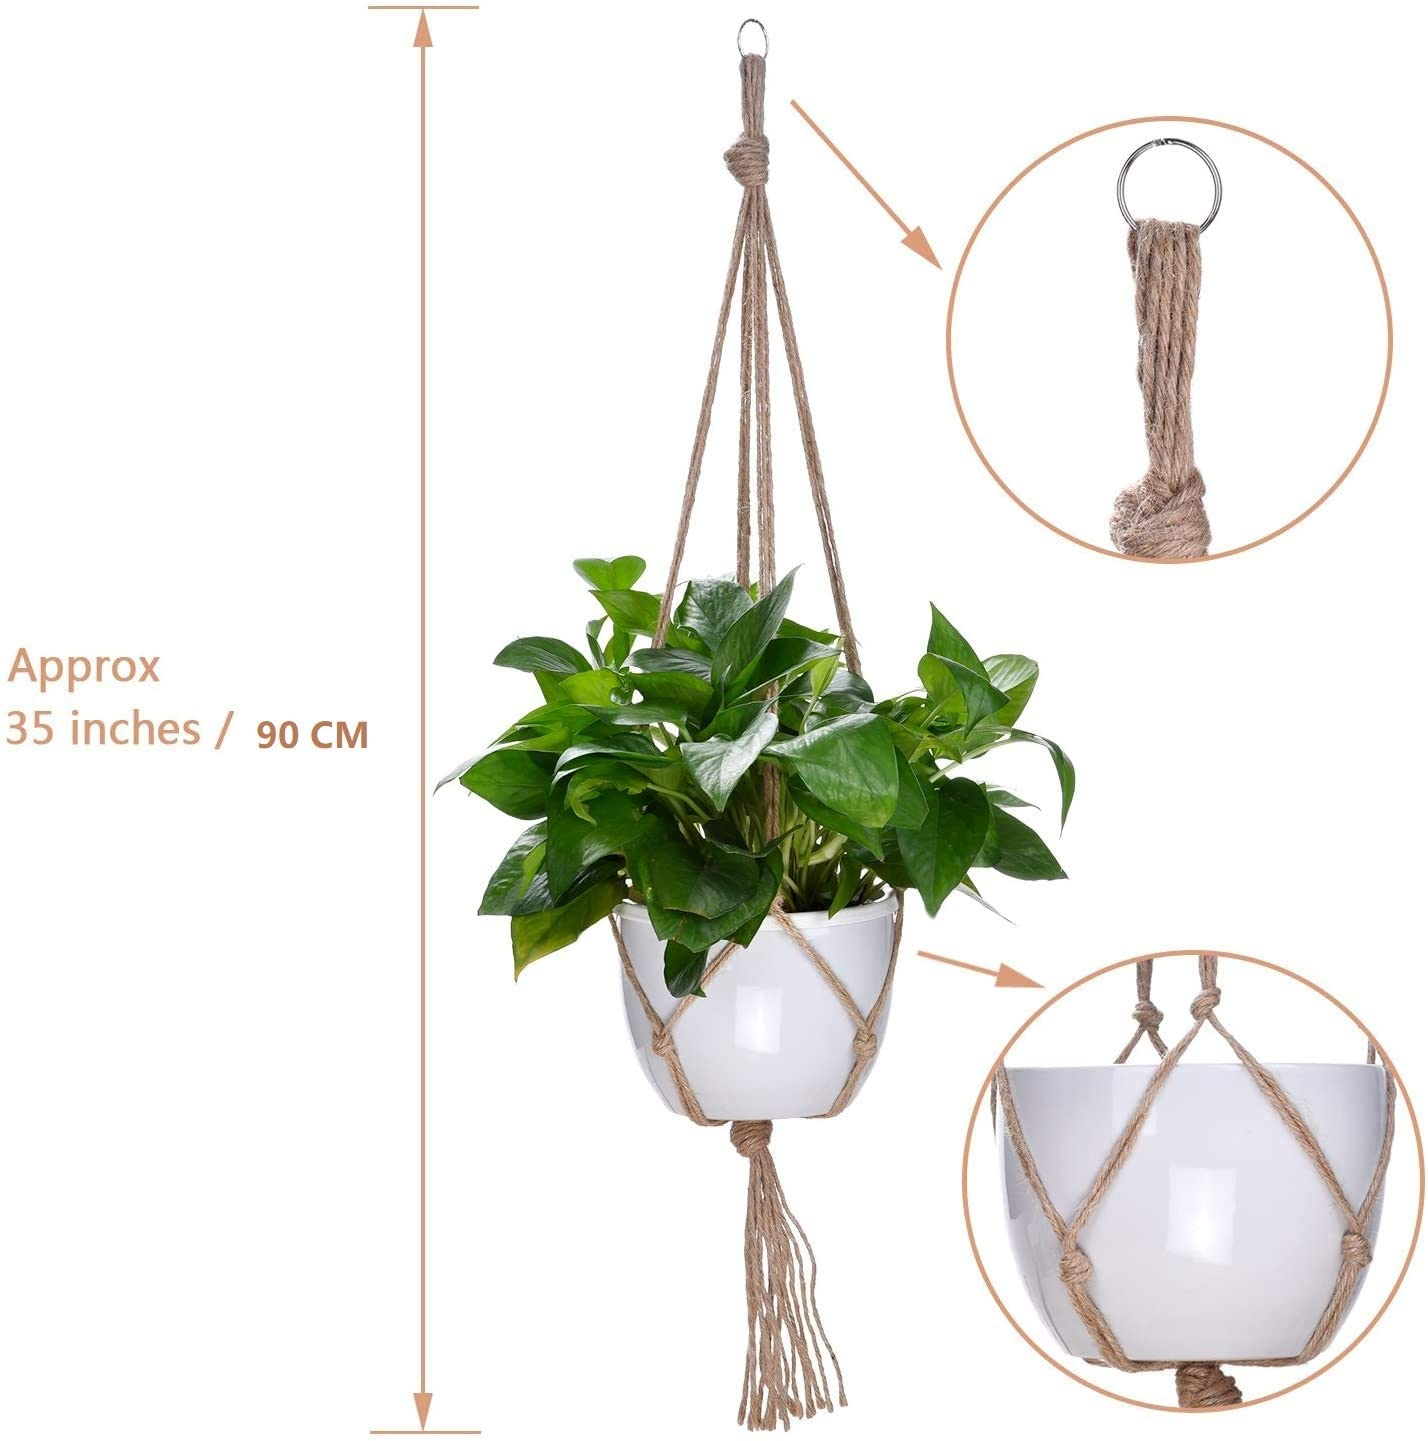 4 Pieces Macrame Plant Hanger Flower Pot Plant Holder with Key Ring for Indoor Outdoor Decorations, 2 Pieces 105 cm and 2 Pieces 88 cm, 4 Legs with 4 Screw Hooks